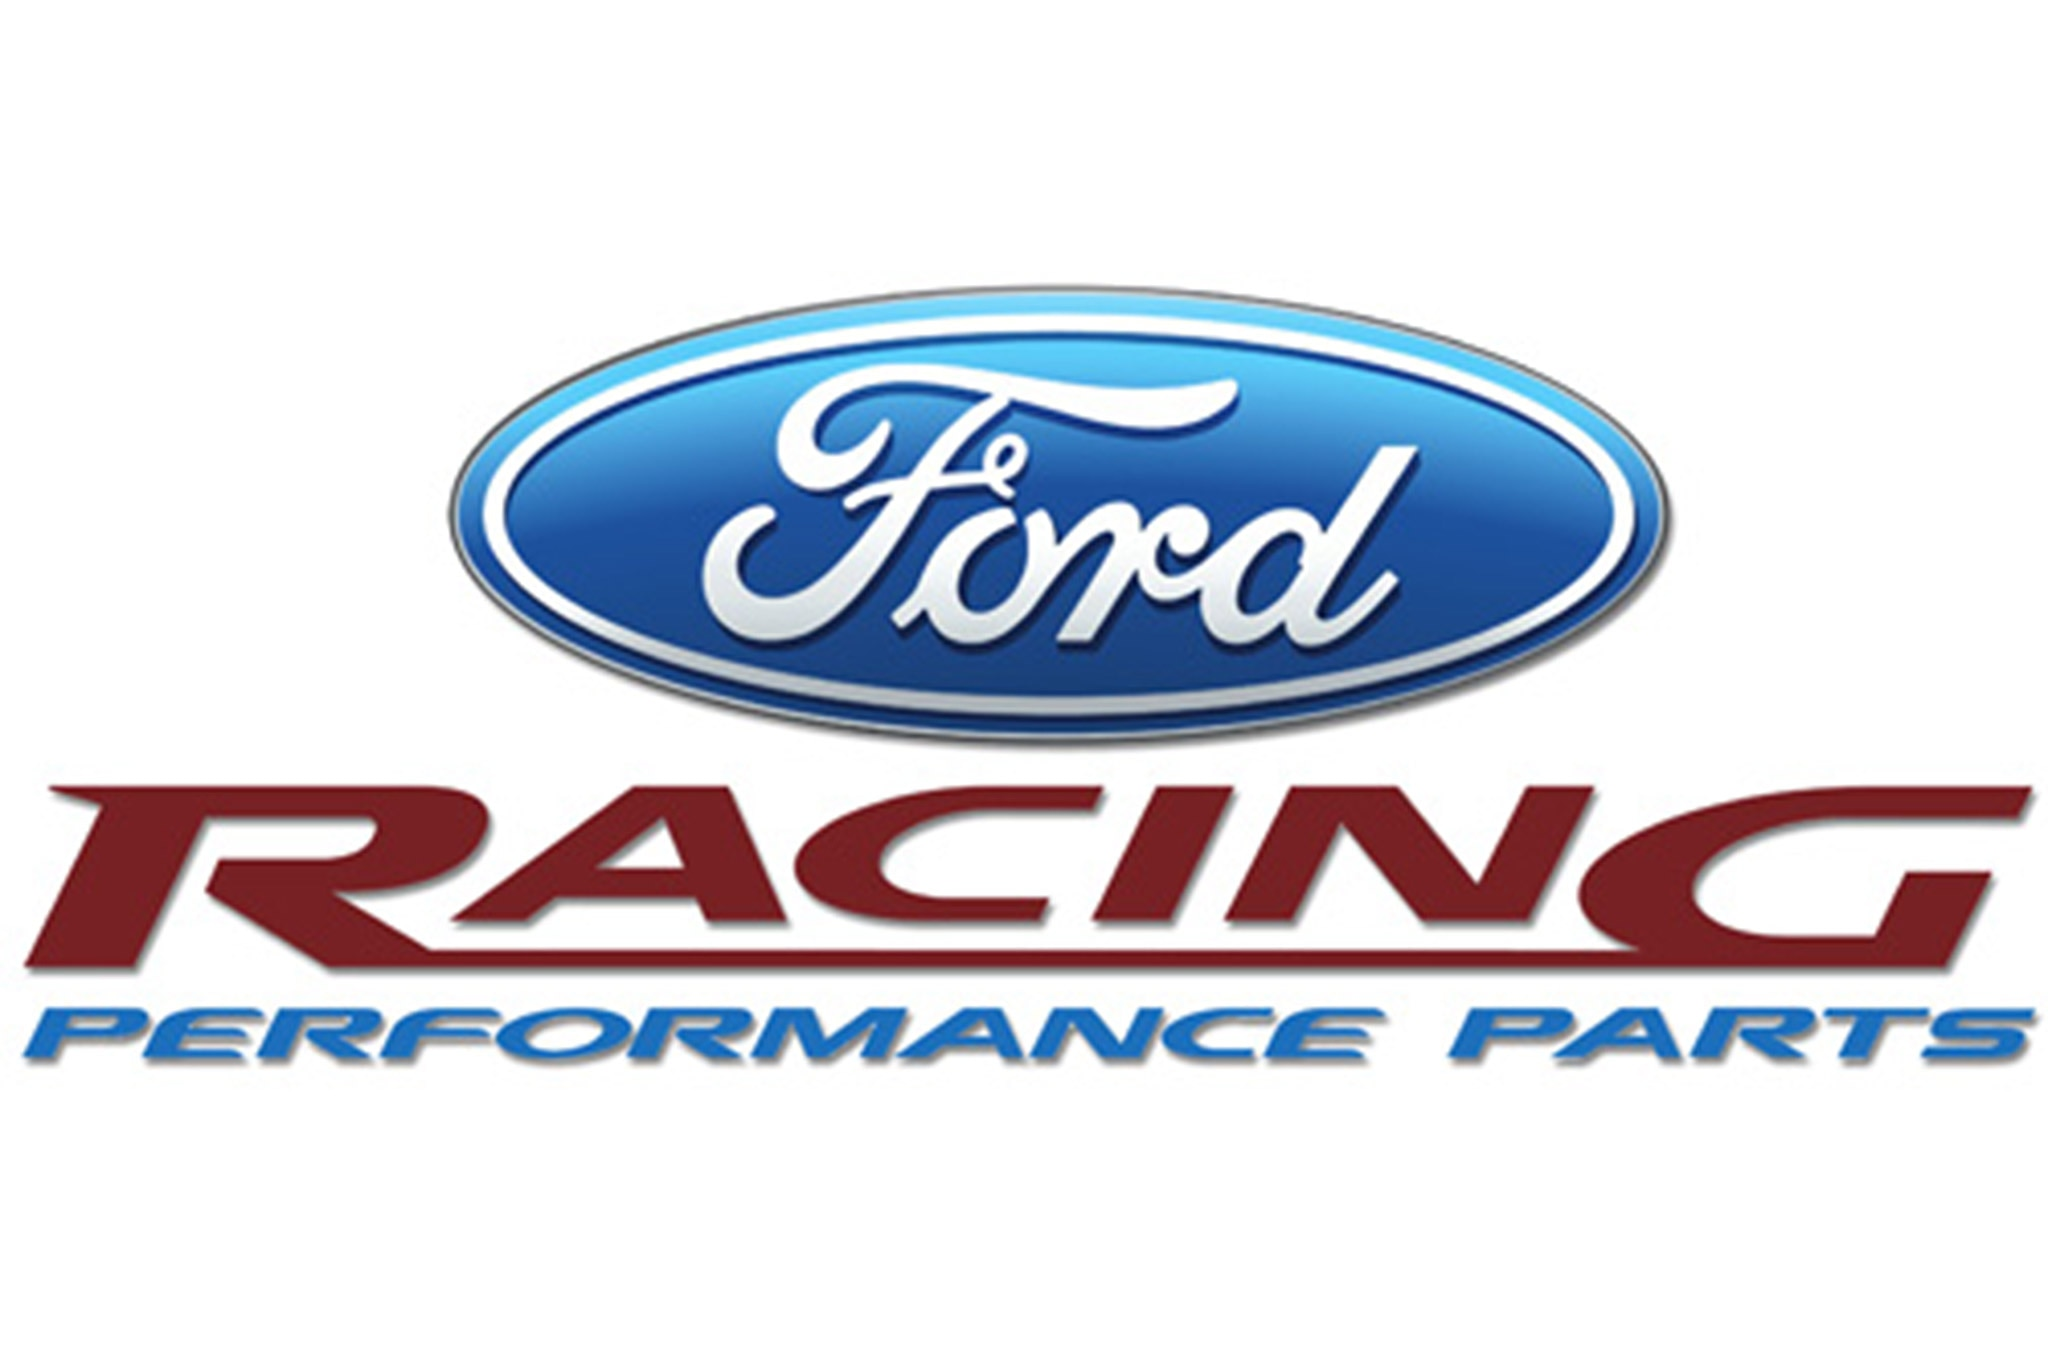 Ford Racing Parts >> Ford Racing Performance Parts Logo Photo 102600044 Win